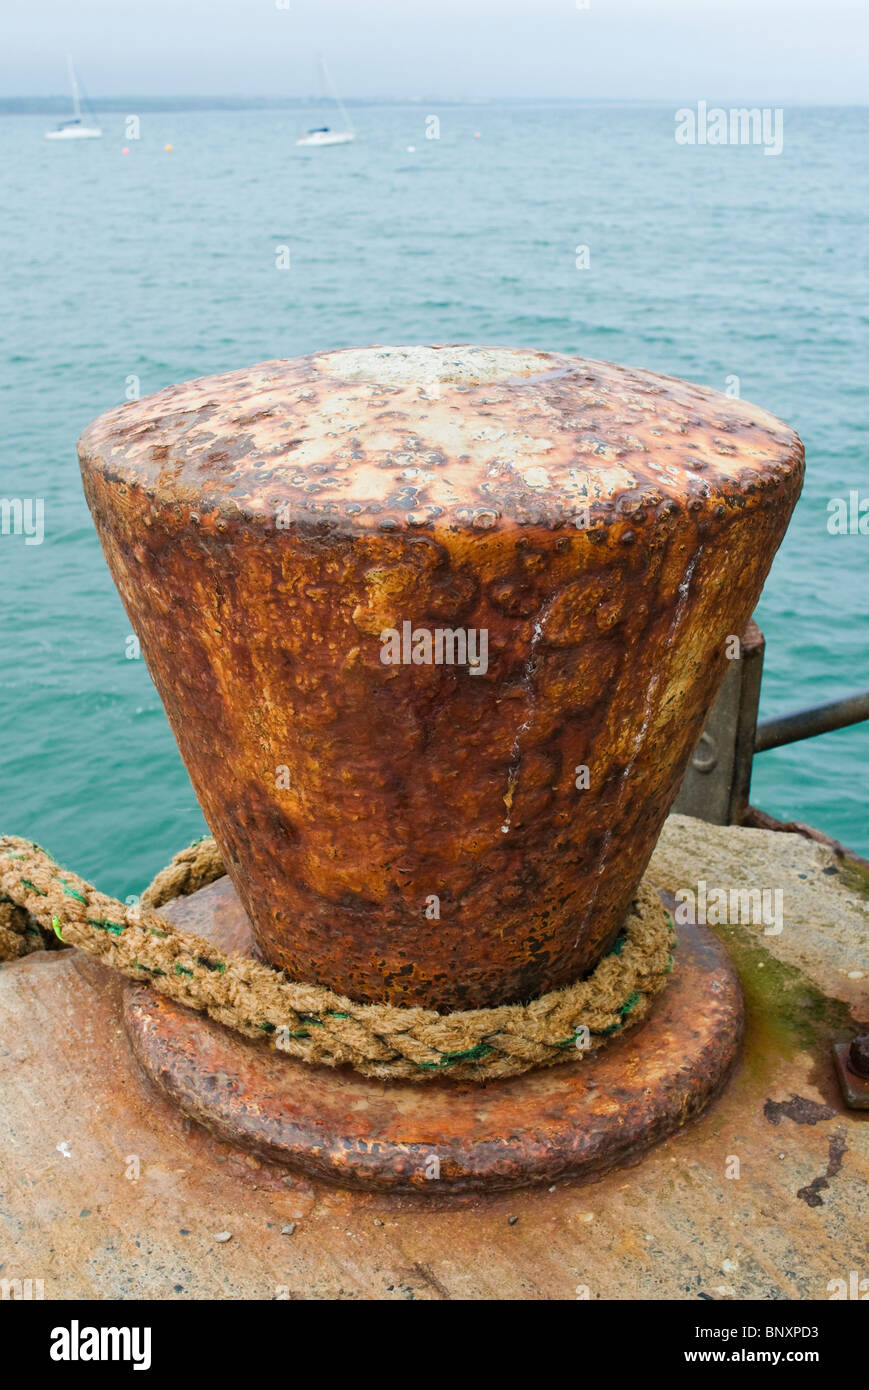 Rusty old cast iron bollard for mooring boats on the quay - Stock Image